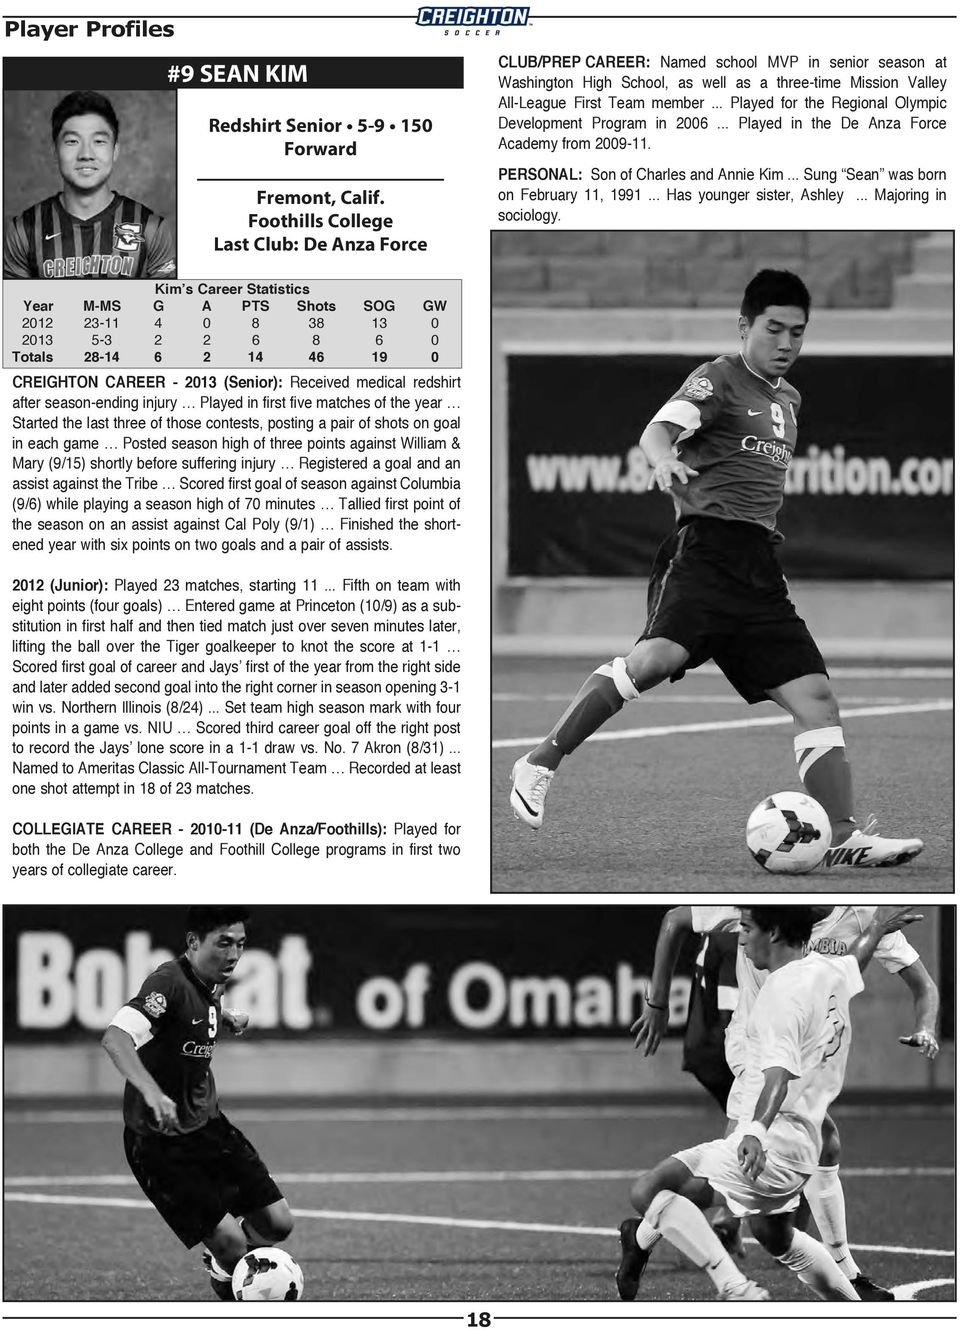 .. Played for the Regional Olympic Development Program in 2006... Played in the De Anza Force Academy from 2009-11. PERSONAL: Son of Charles and Annie Kim... Sung Sean was born on February 11, 1991.